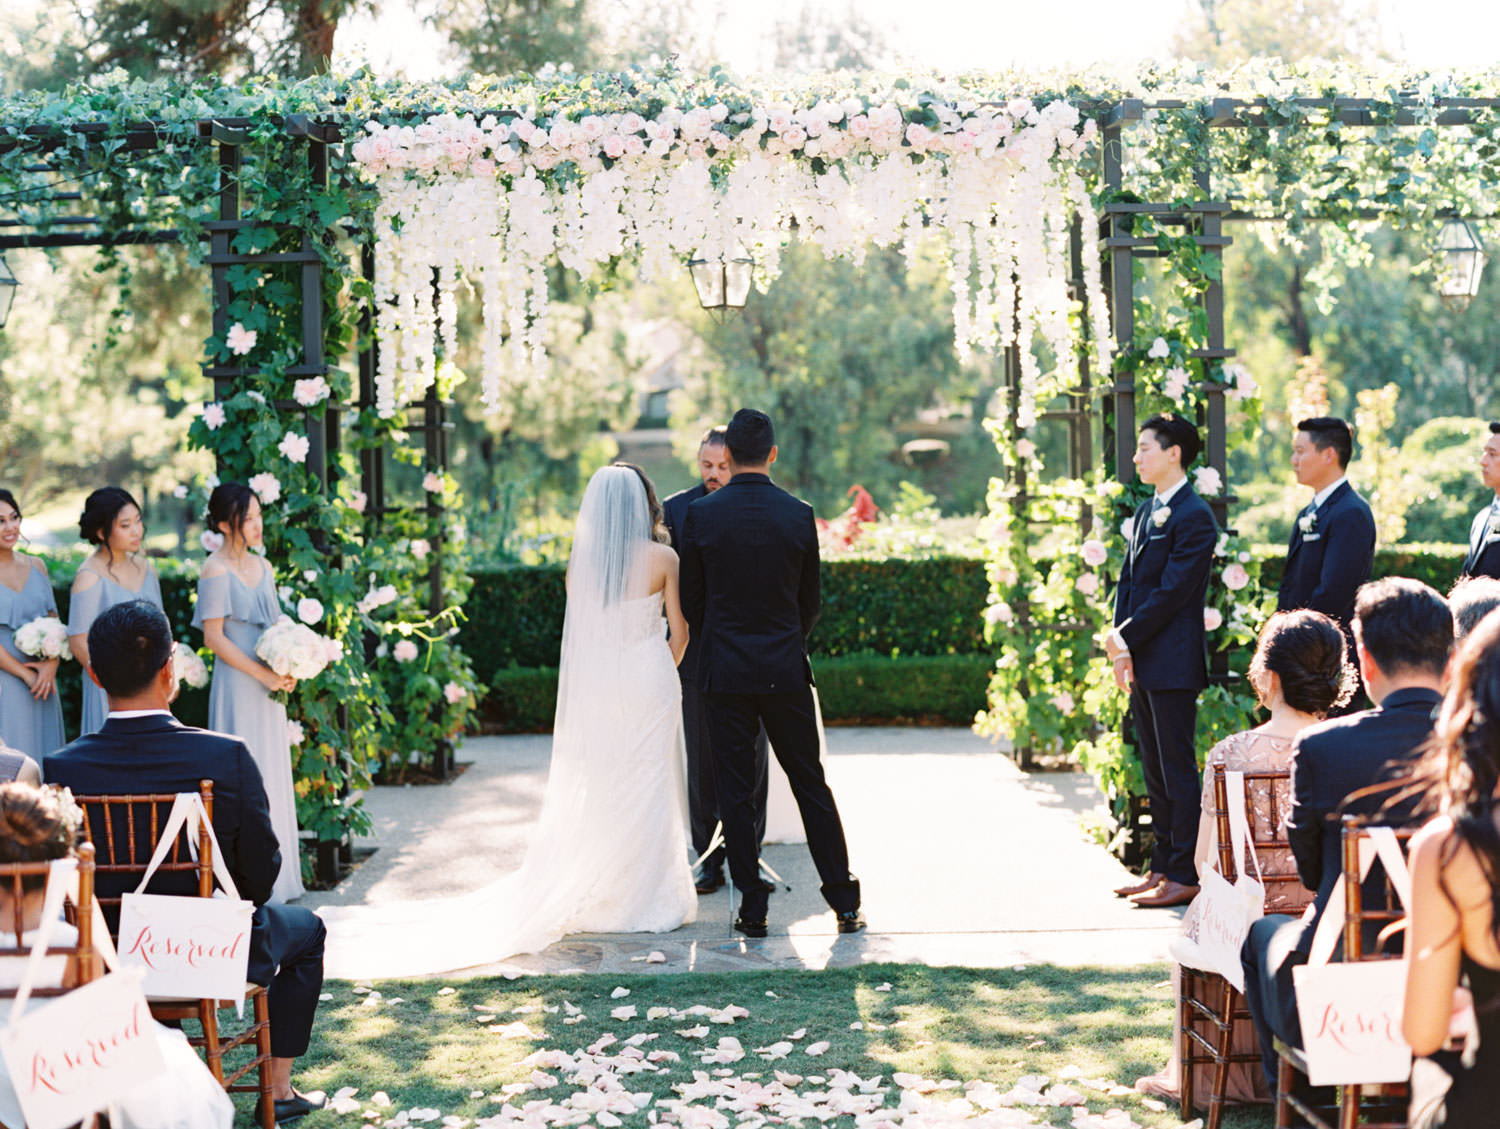 Bride and groom in front of Pergola wrapped in greenery with blush flowers on the side columns and hanging blush and ivory flowers in the center. Rancho Bernardo Inn Aragon lawn wedding ceremony. Film photo by Cavin Elizabeth Photography